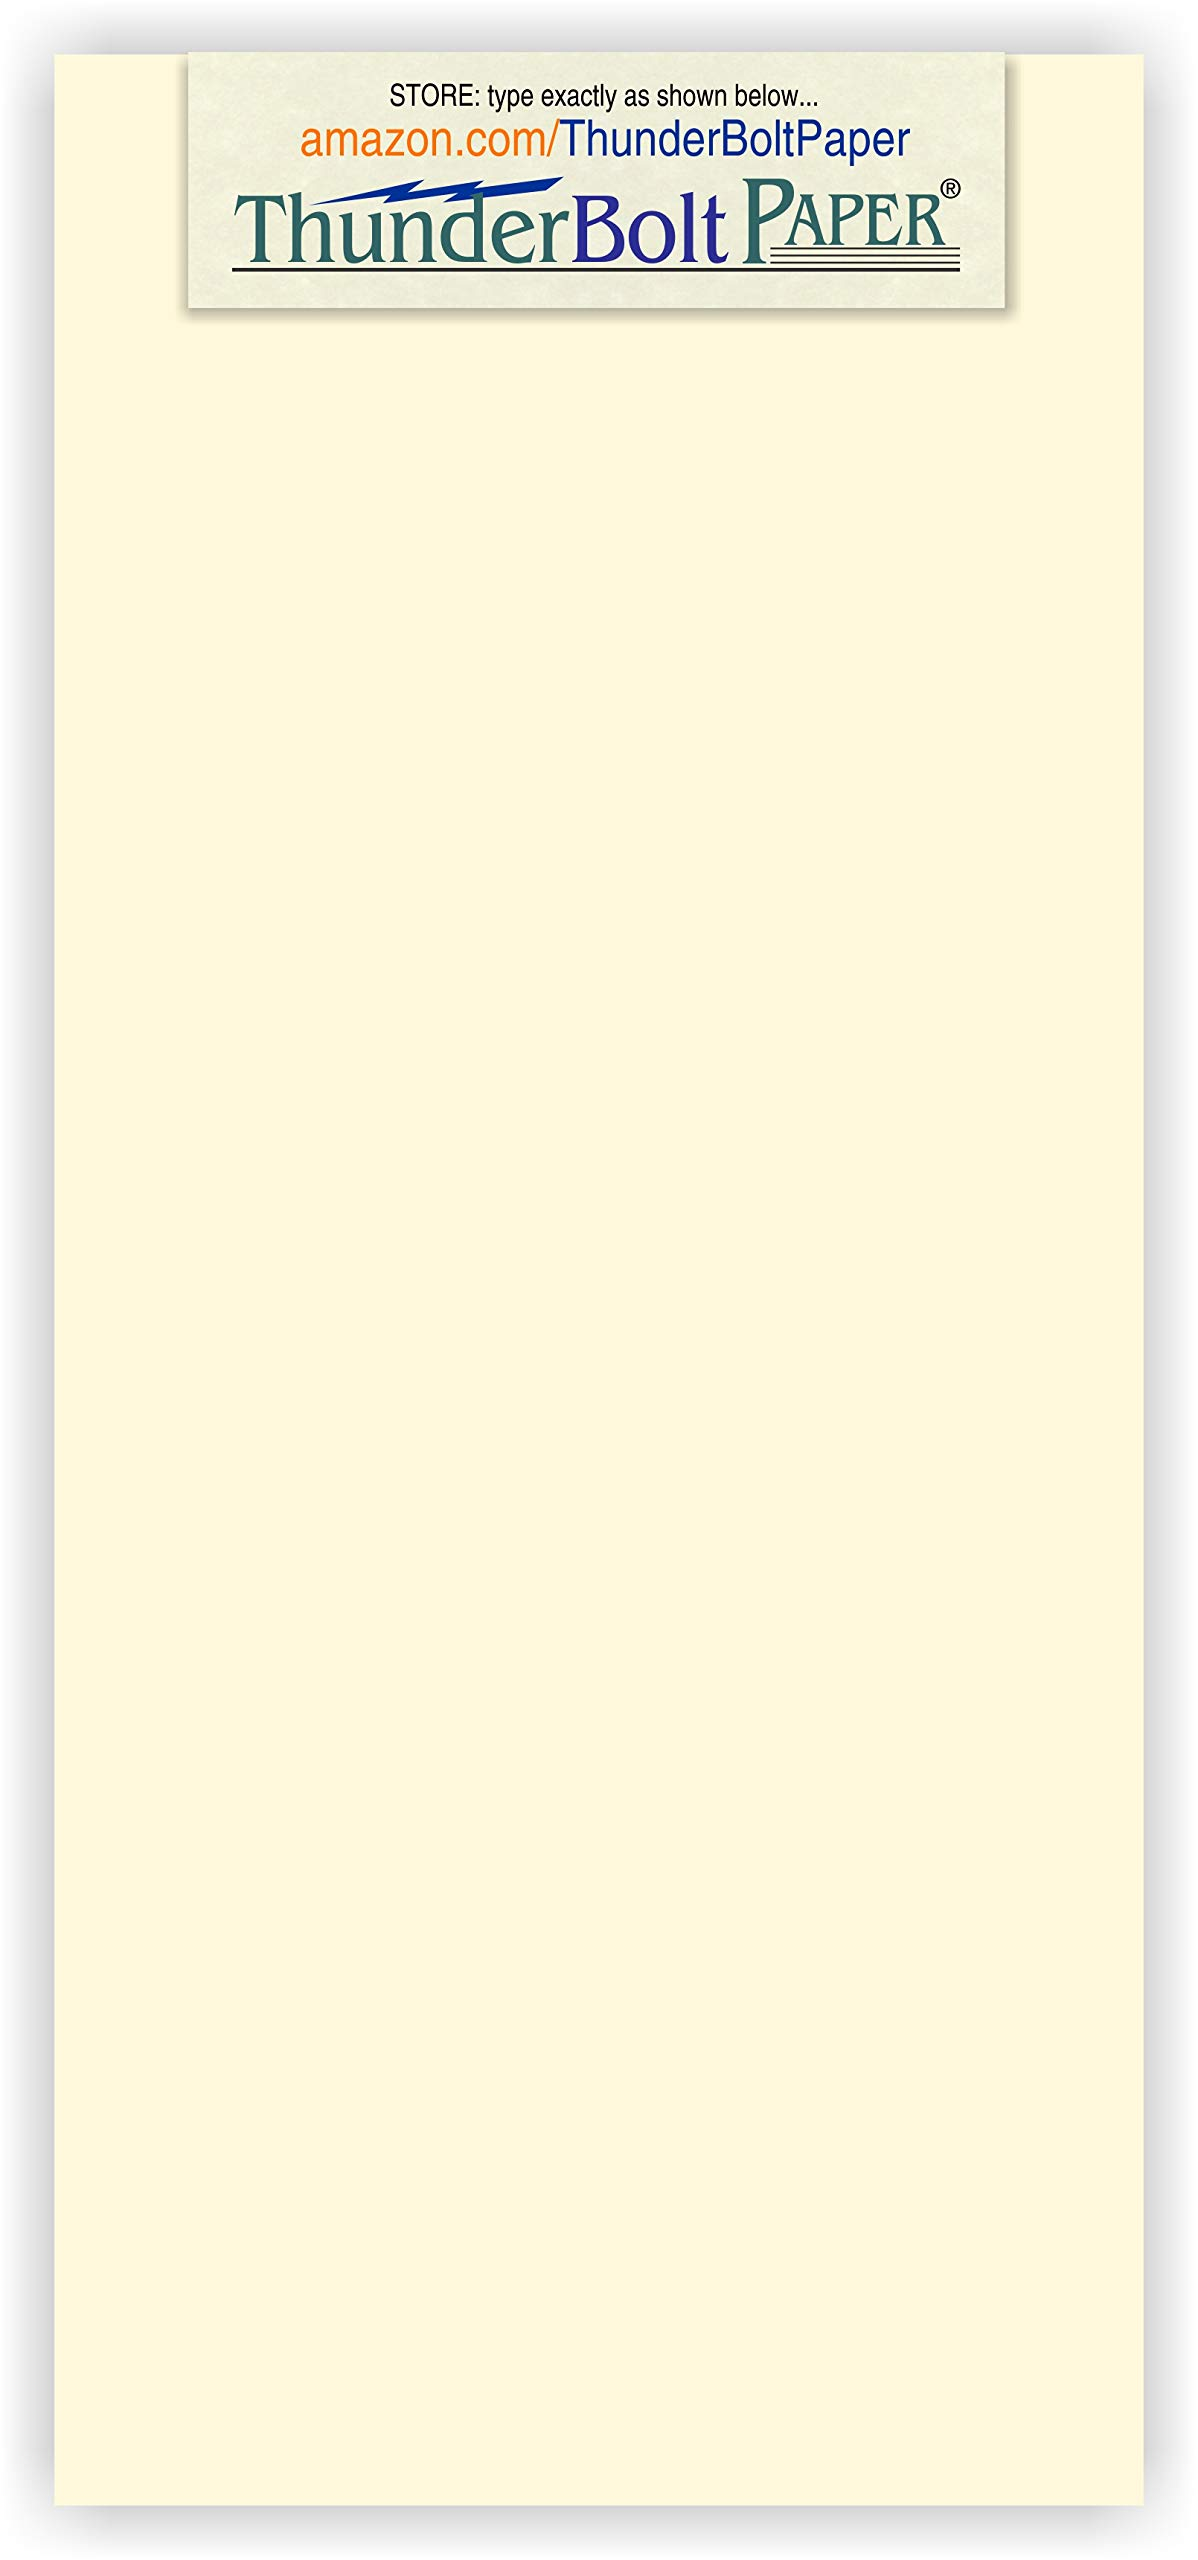 1000 Natural Smooth Card Stock Sheets Paper - 4'' X 9'' (4X9 Inches) #10 Envelope Insert Size - 80# (80 lb/Pound) Cover Weight - Quality Paper - Smooth Finish by ThunderBolt Paper